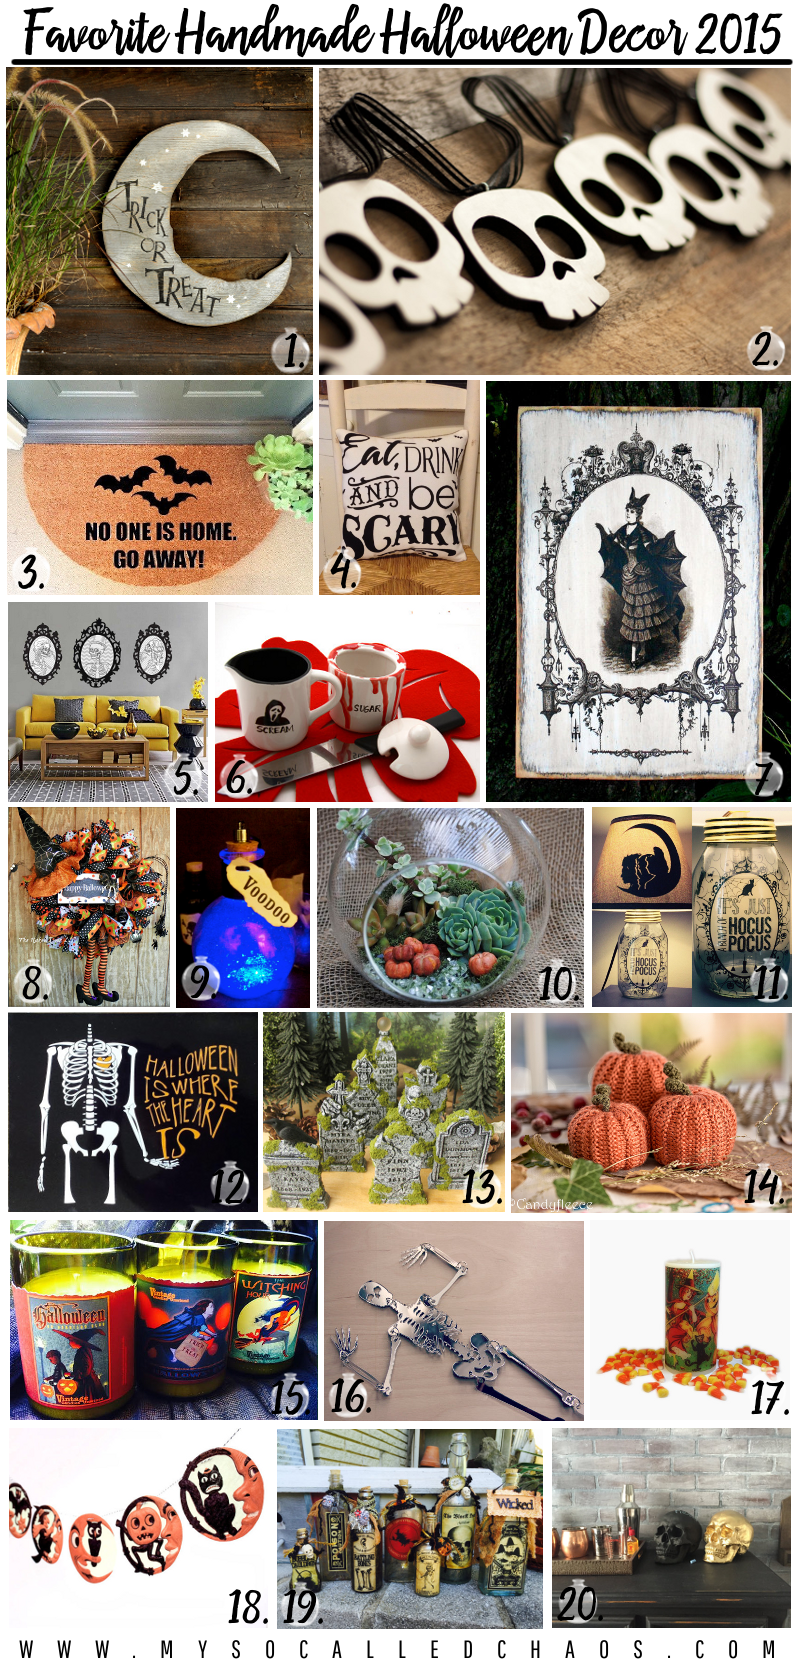 Favorite Handmade Halloween Decor 2015